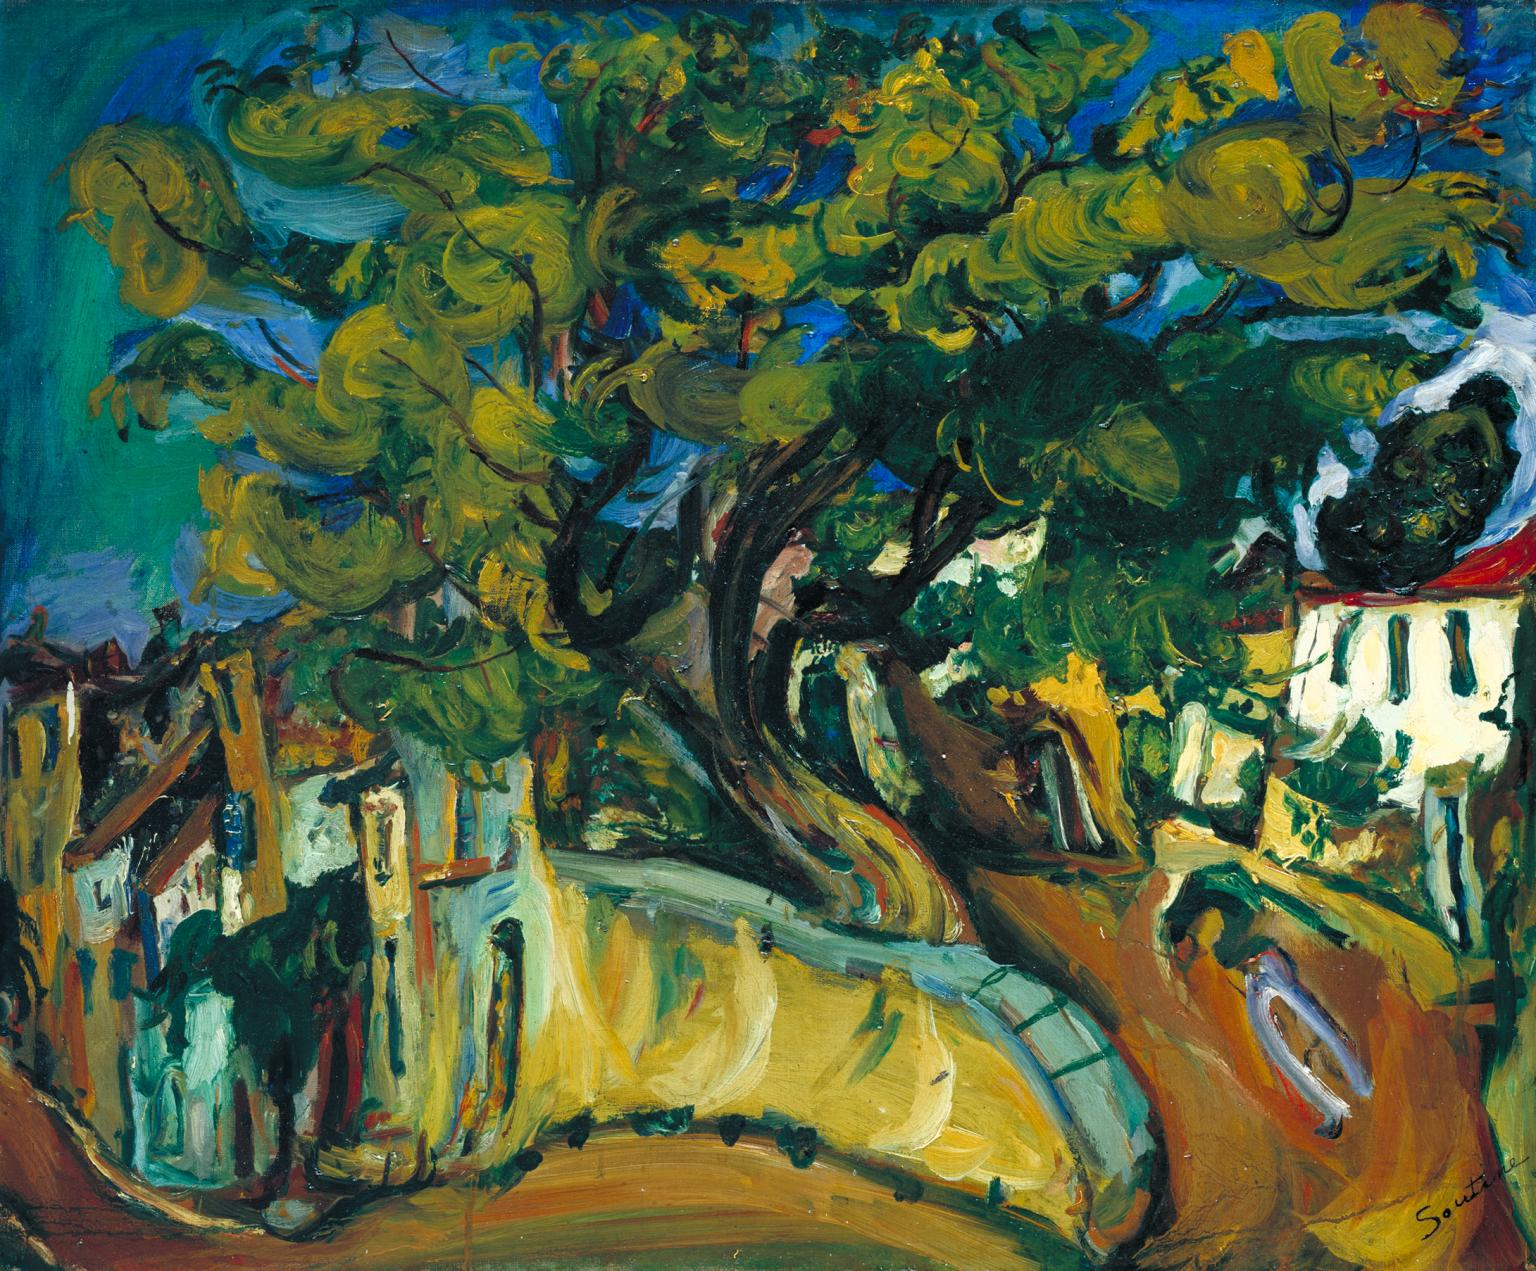 Cagnes Landscape with Tree c.1925-6 by Cha?m Soutine 1893-1943